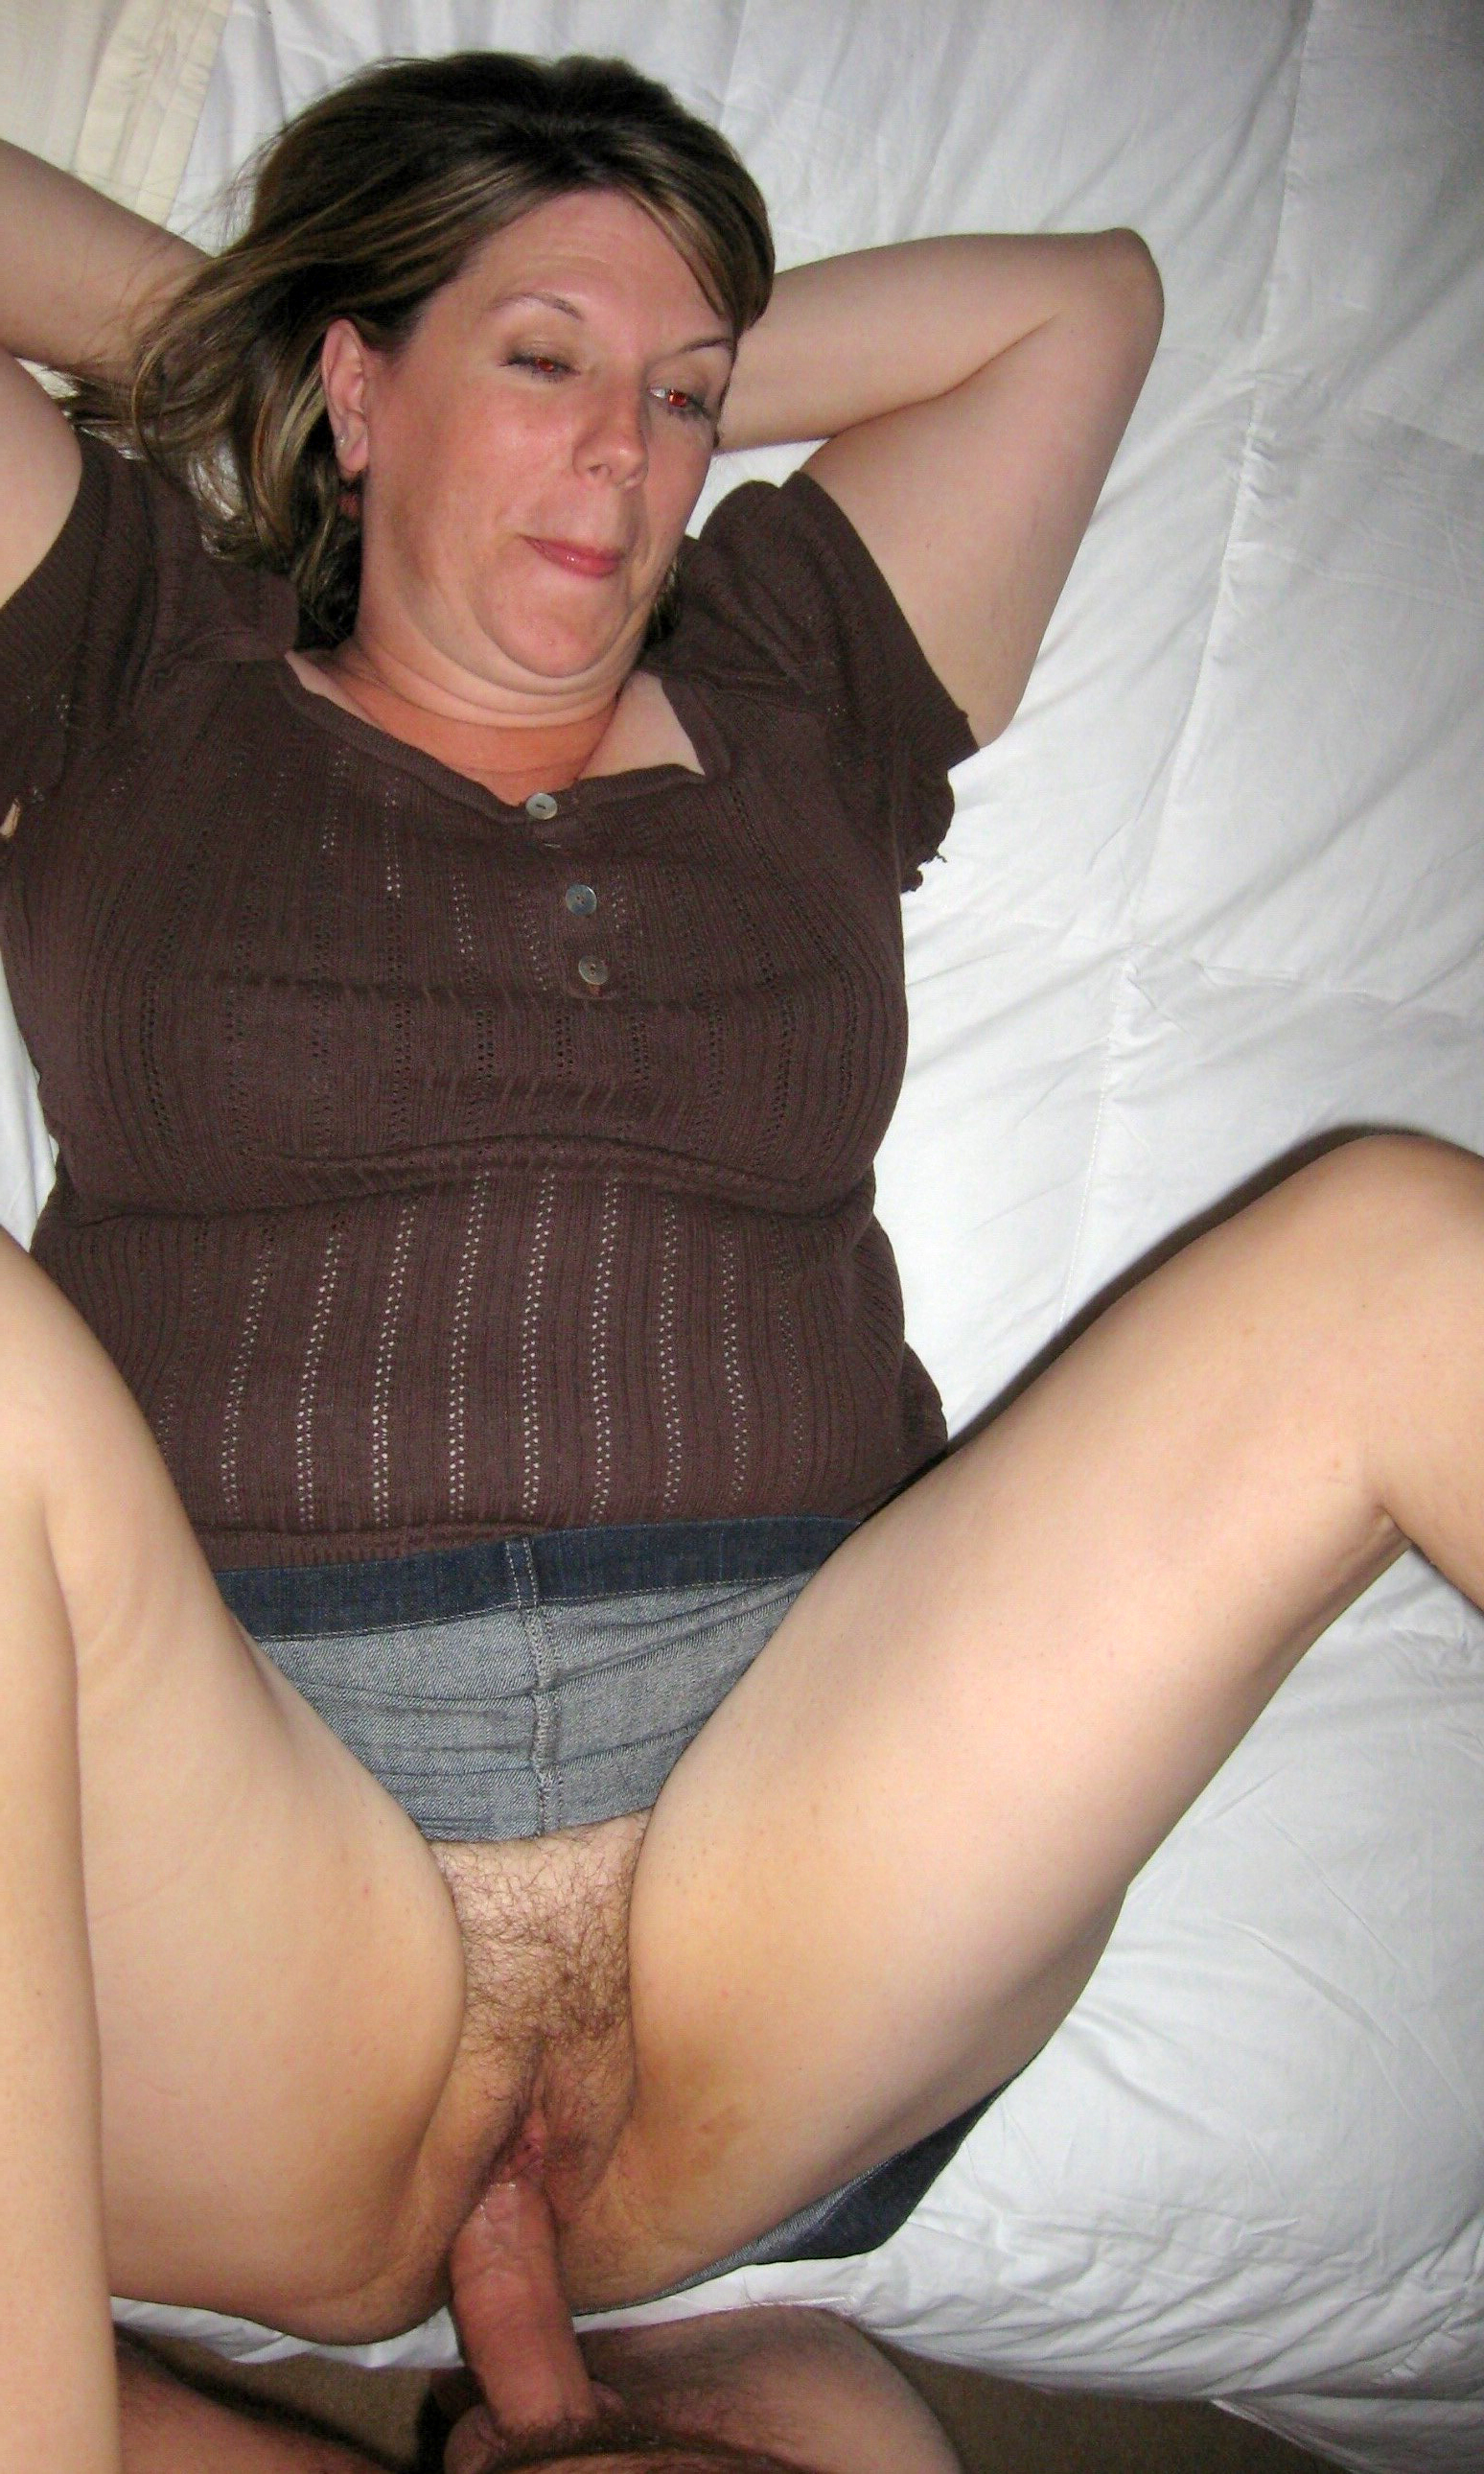 apologise, but, opinion, pictures pantiless upskirt idea magnificent